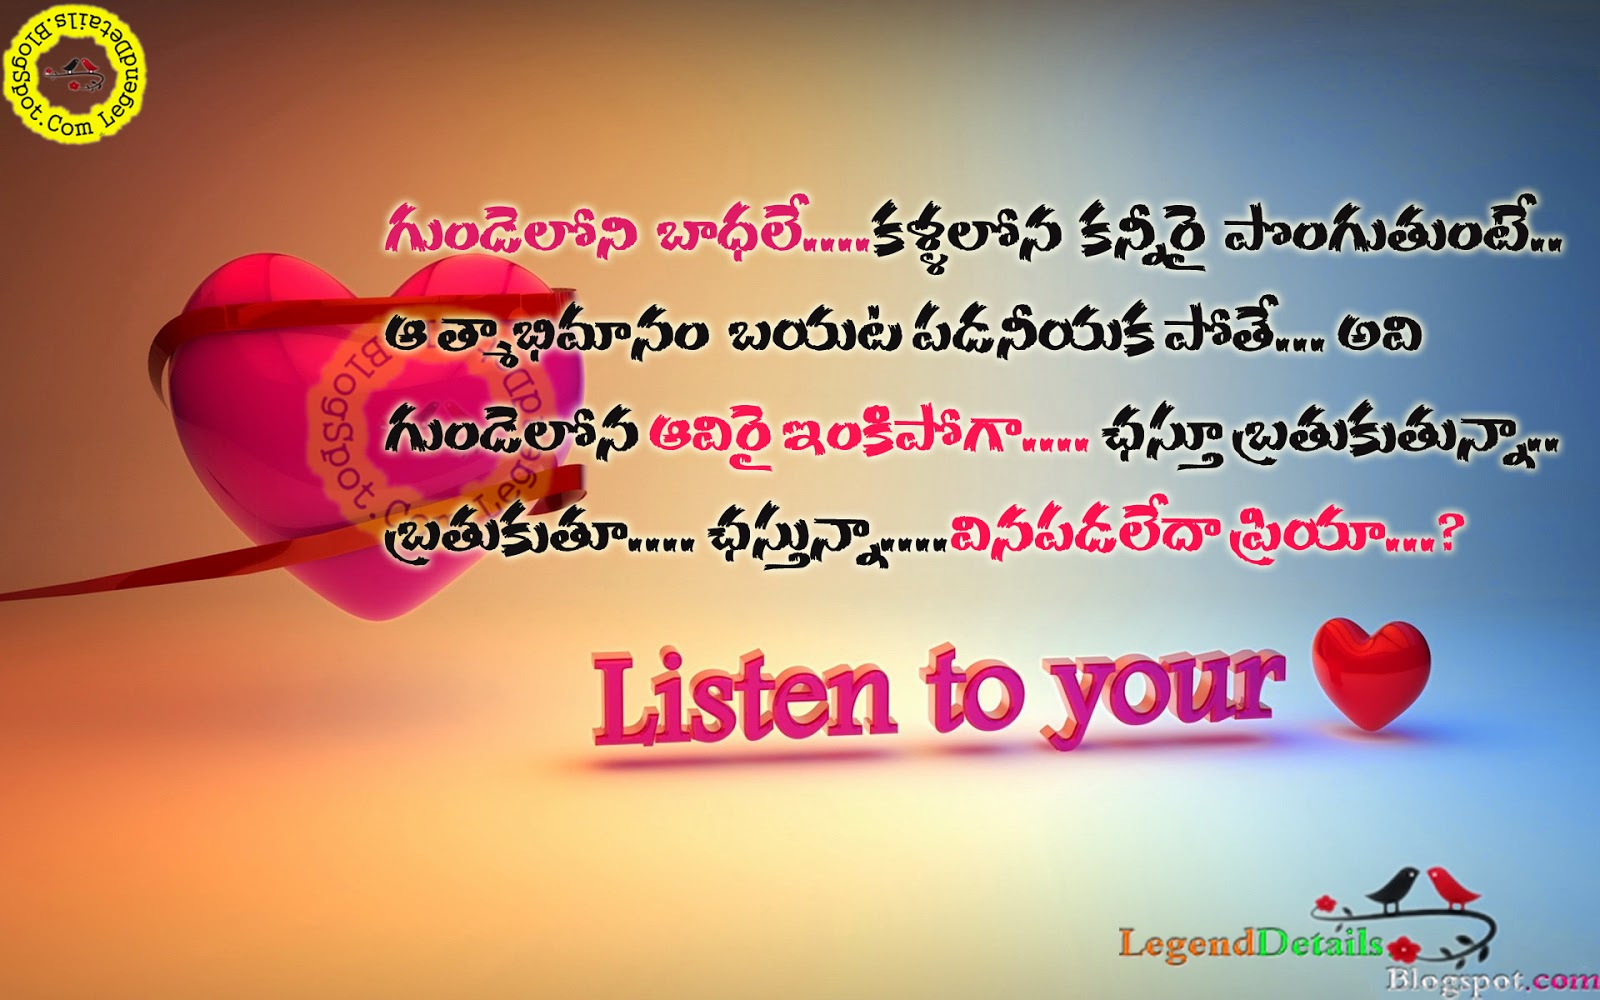 Telugu Love Quotes Telugu Love Sms With Hd Images  Heart Touching Telugu Love Sms